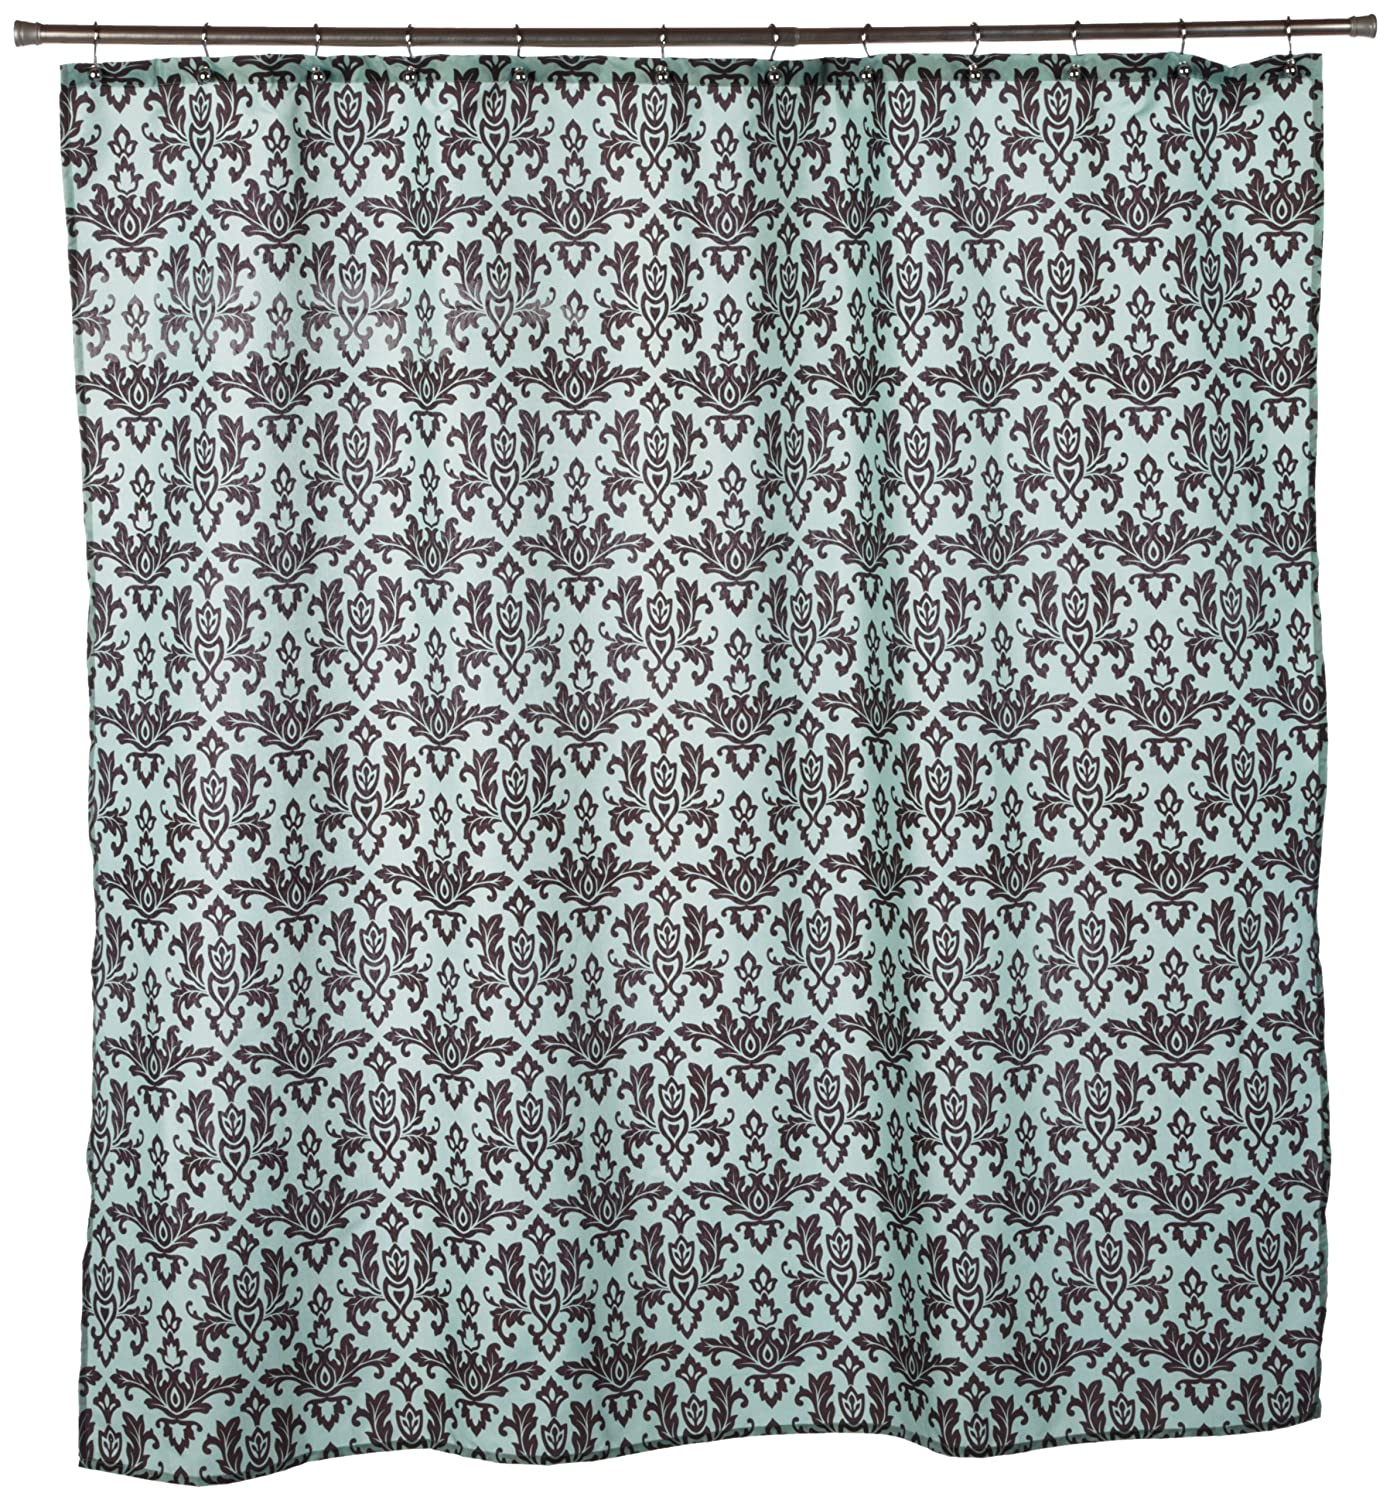 Teal and black shower curtain - Amazon Com Carnation Home Fashions Damask Fabric Shower Curtain Chocolate On Green Home Kitchen